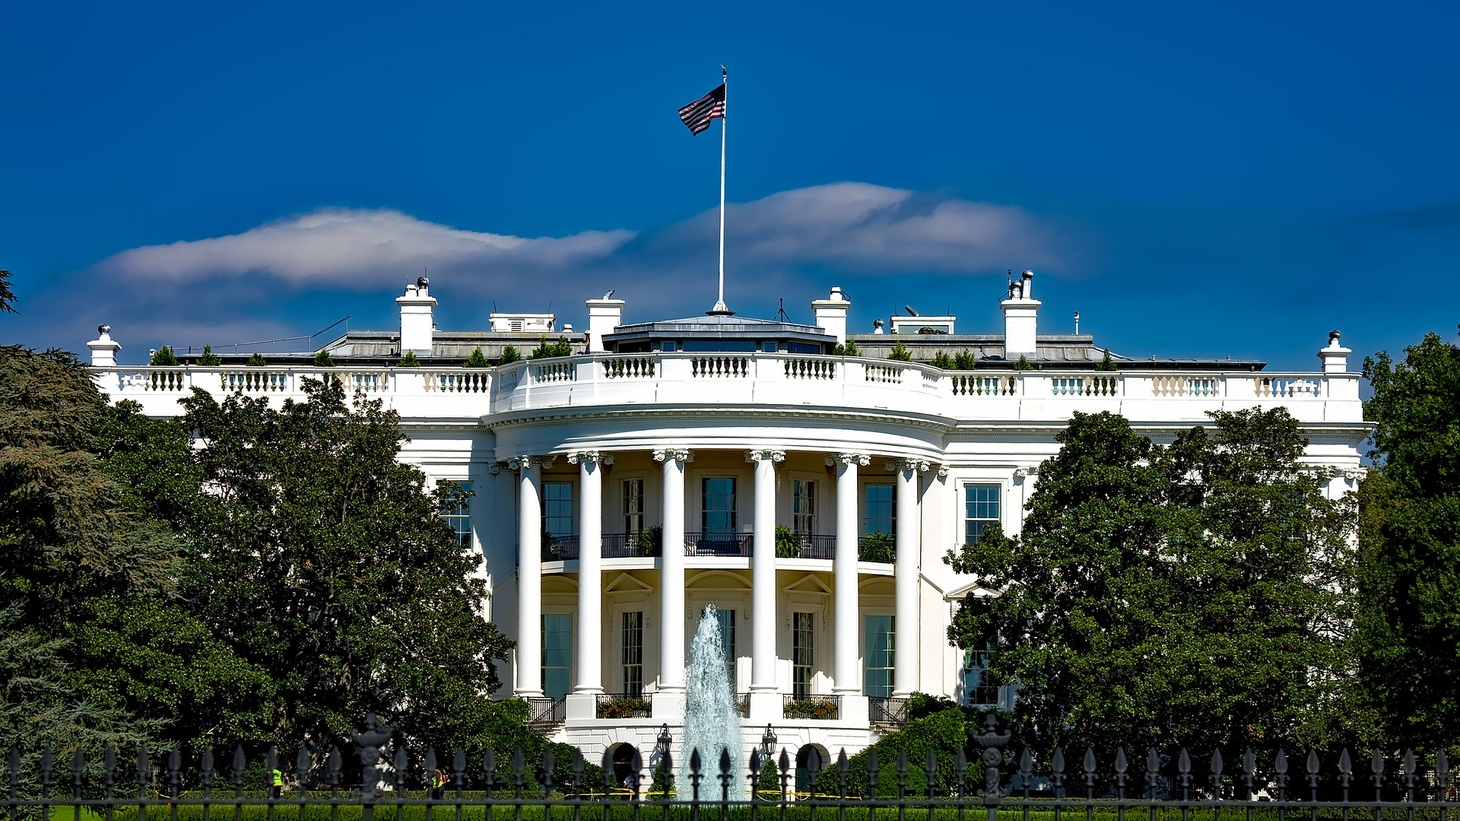 A strenuous debate happened in the White House on Friday after President Trump apparently discussed declaring martial law to rerun the election.